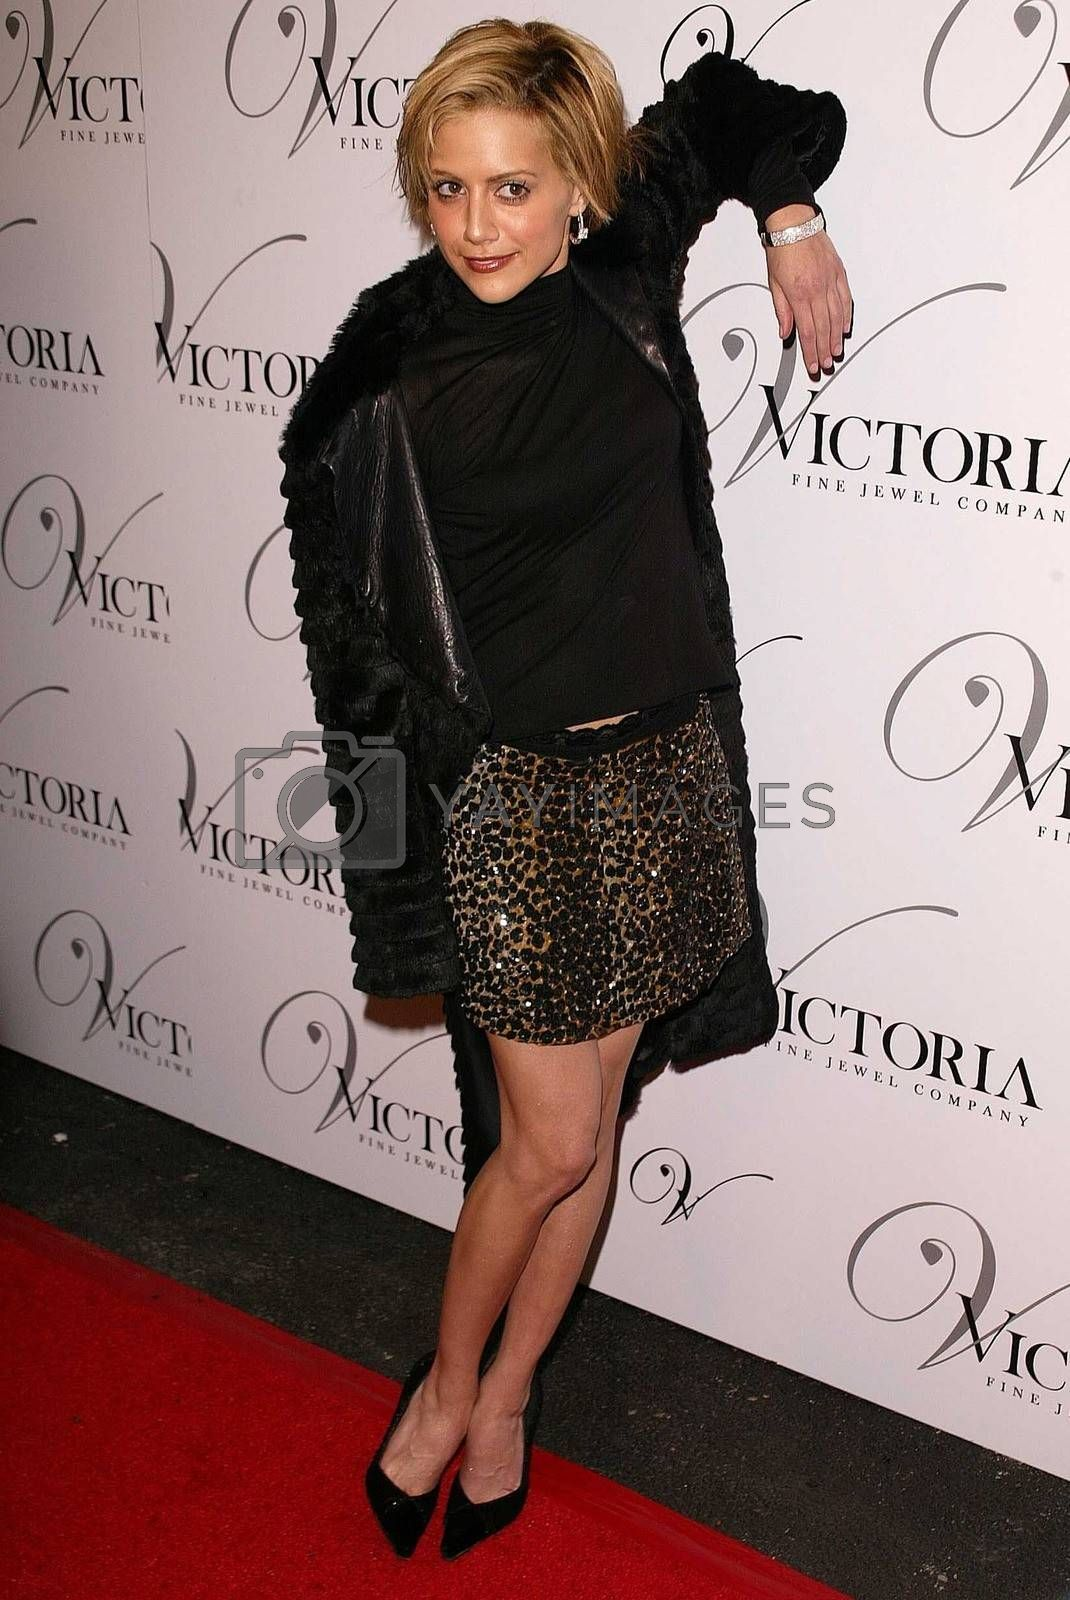 Royalty free image of Grand Opening of Victoria Jewels by ImageCollect